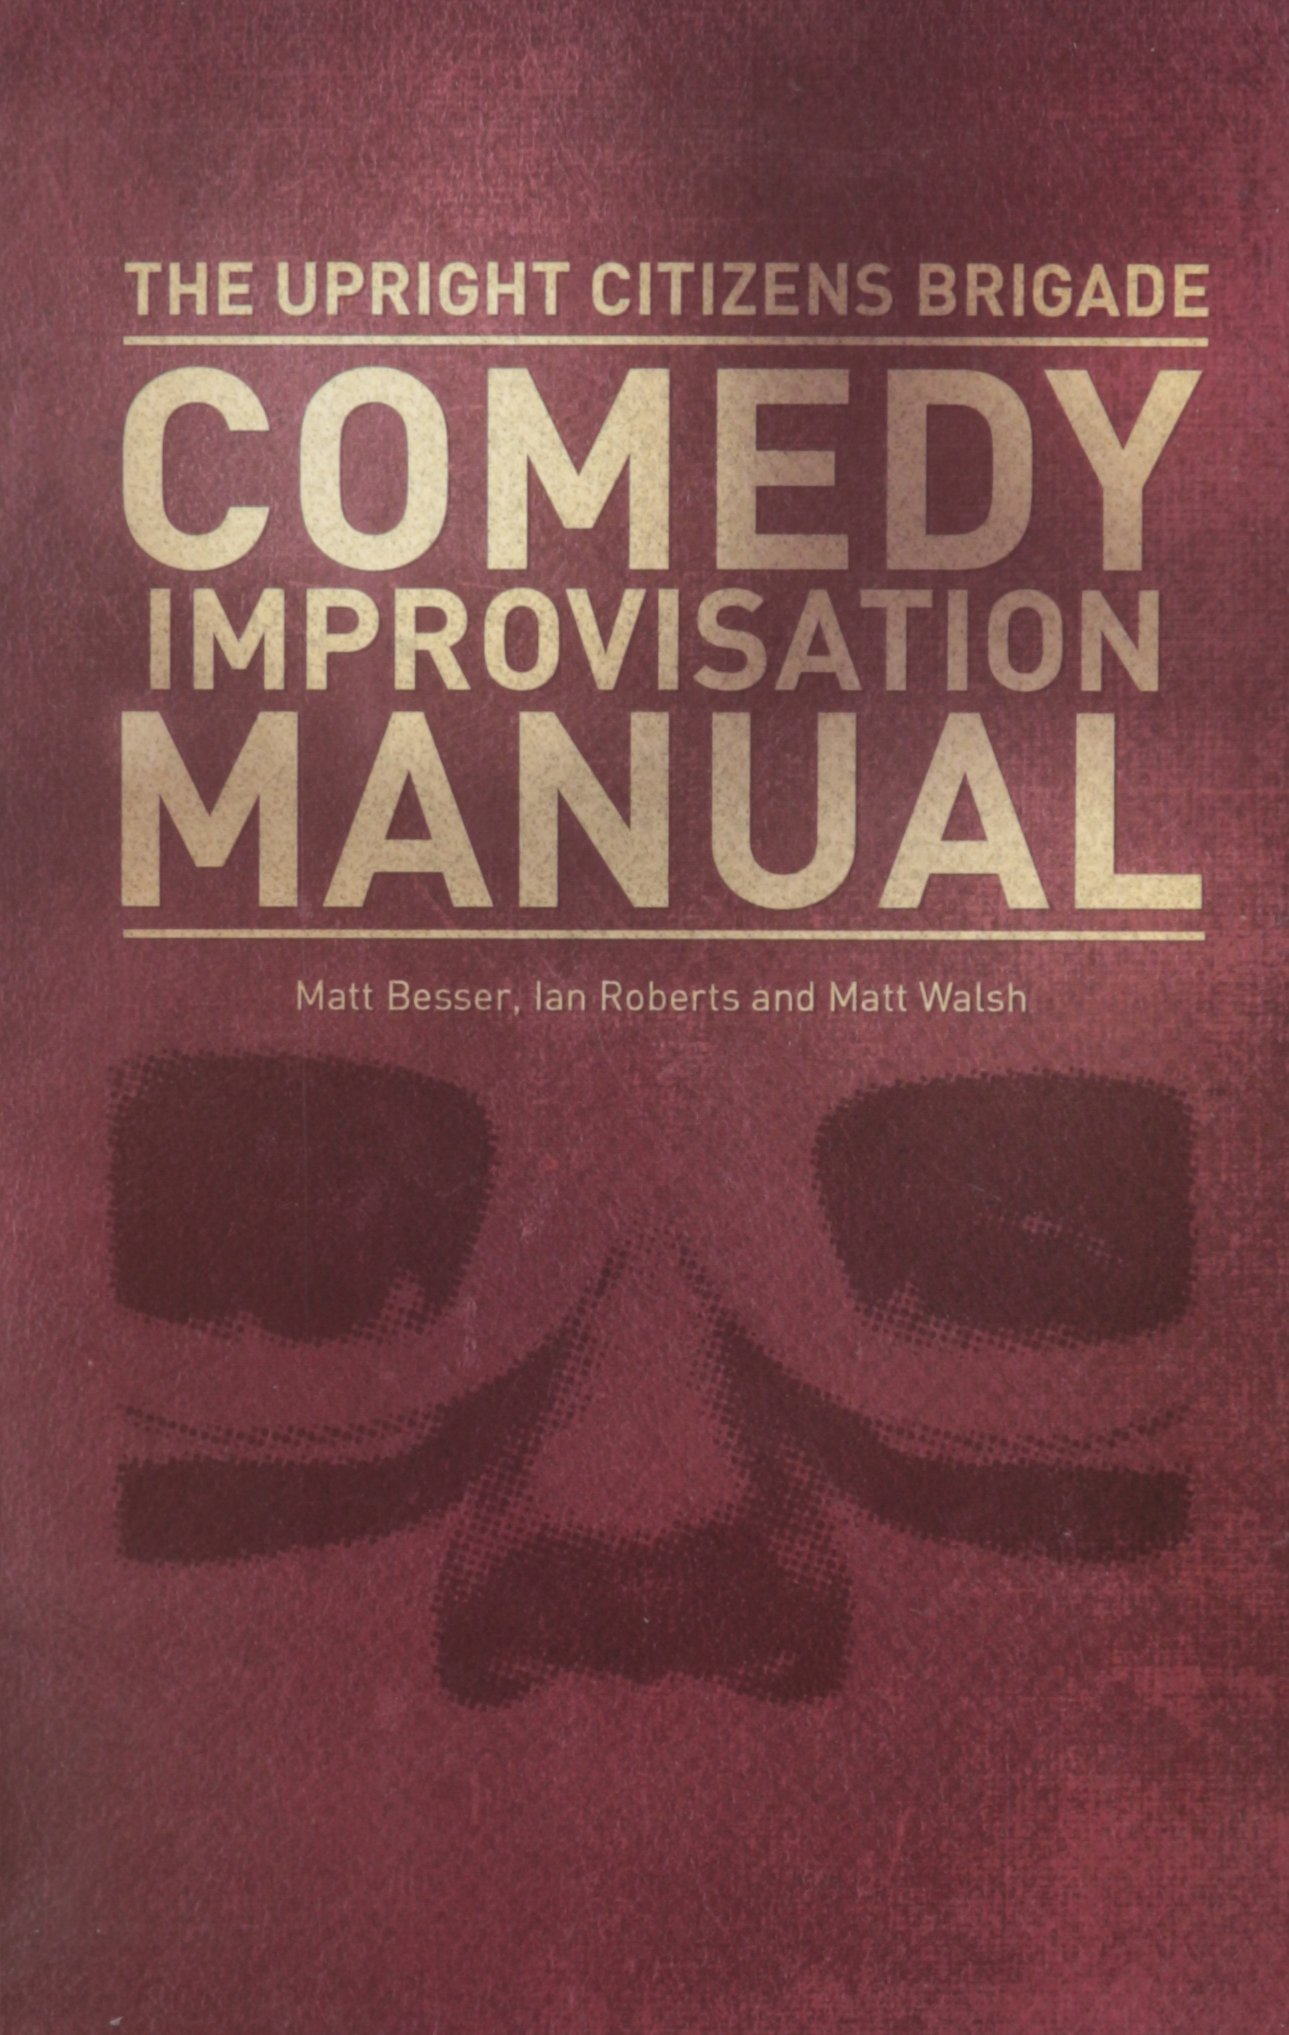 Upright Citizens Brigade Comedy Improvisation Manual ( Ian Roberts, Matt Besser, Matt Walsh)